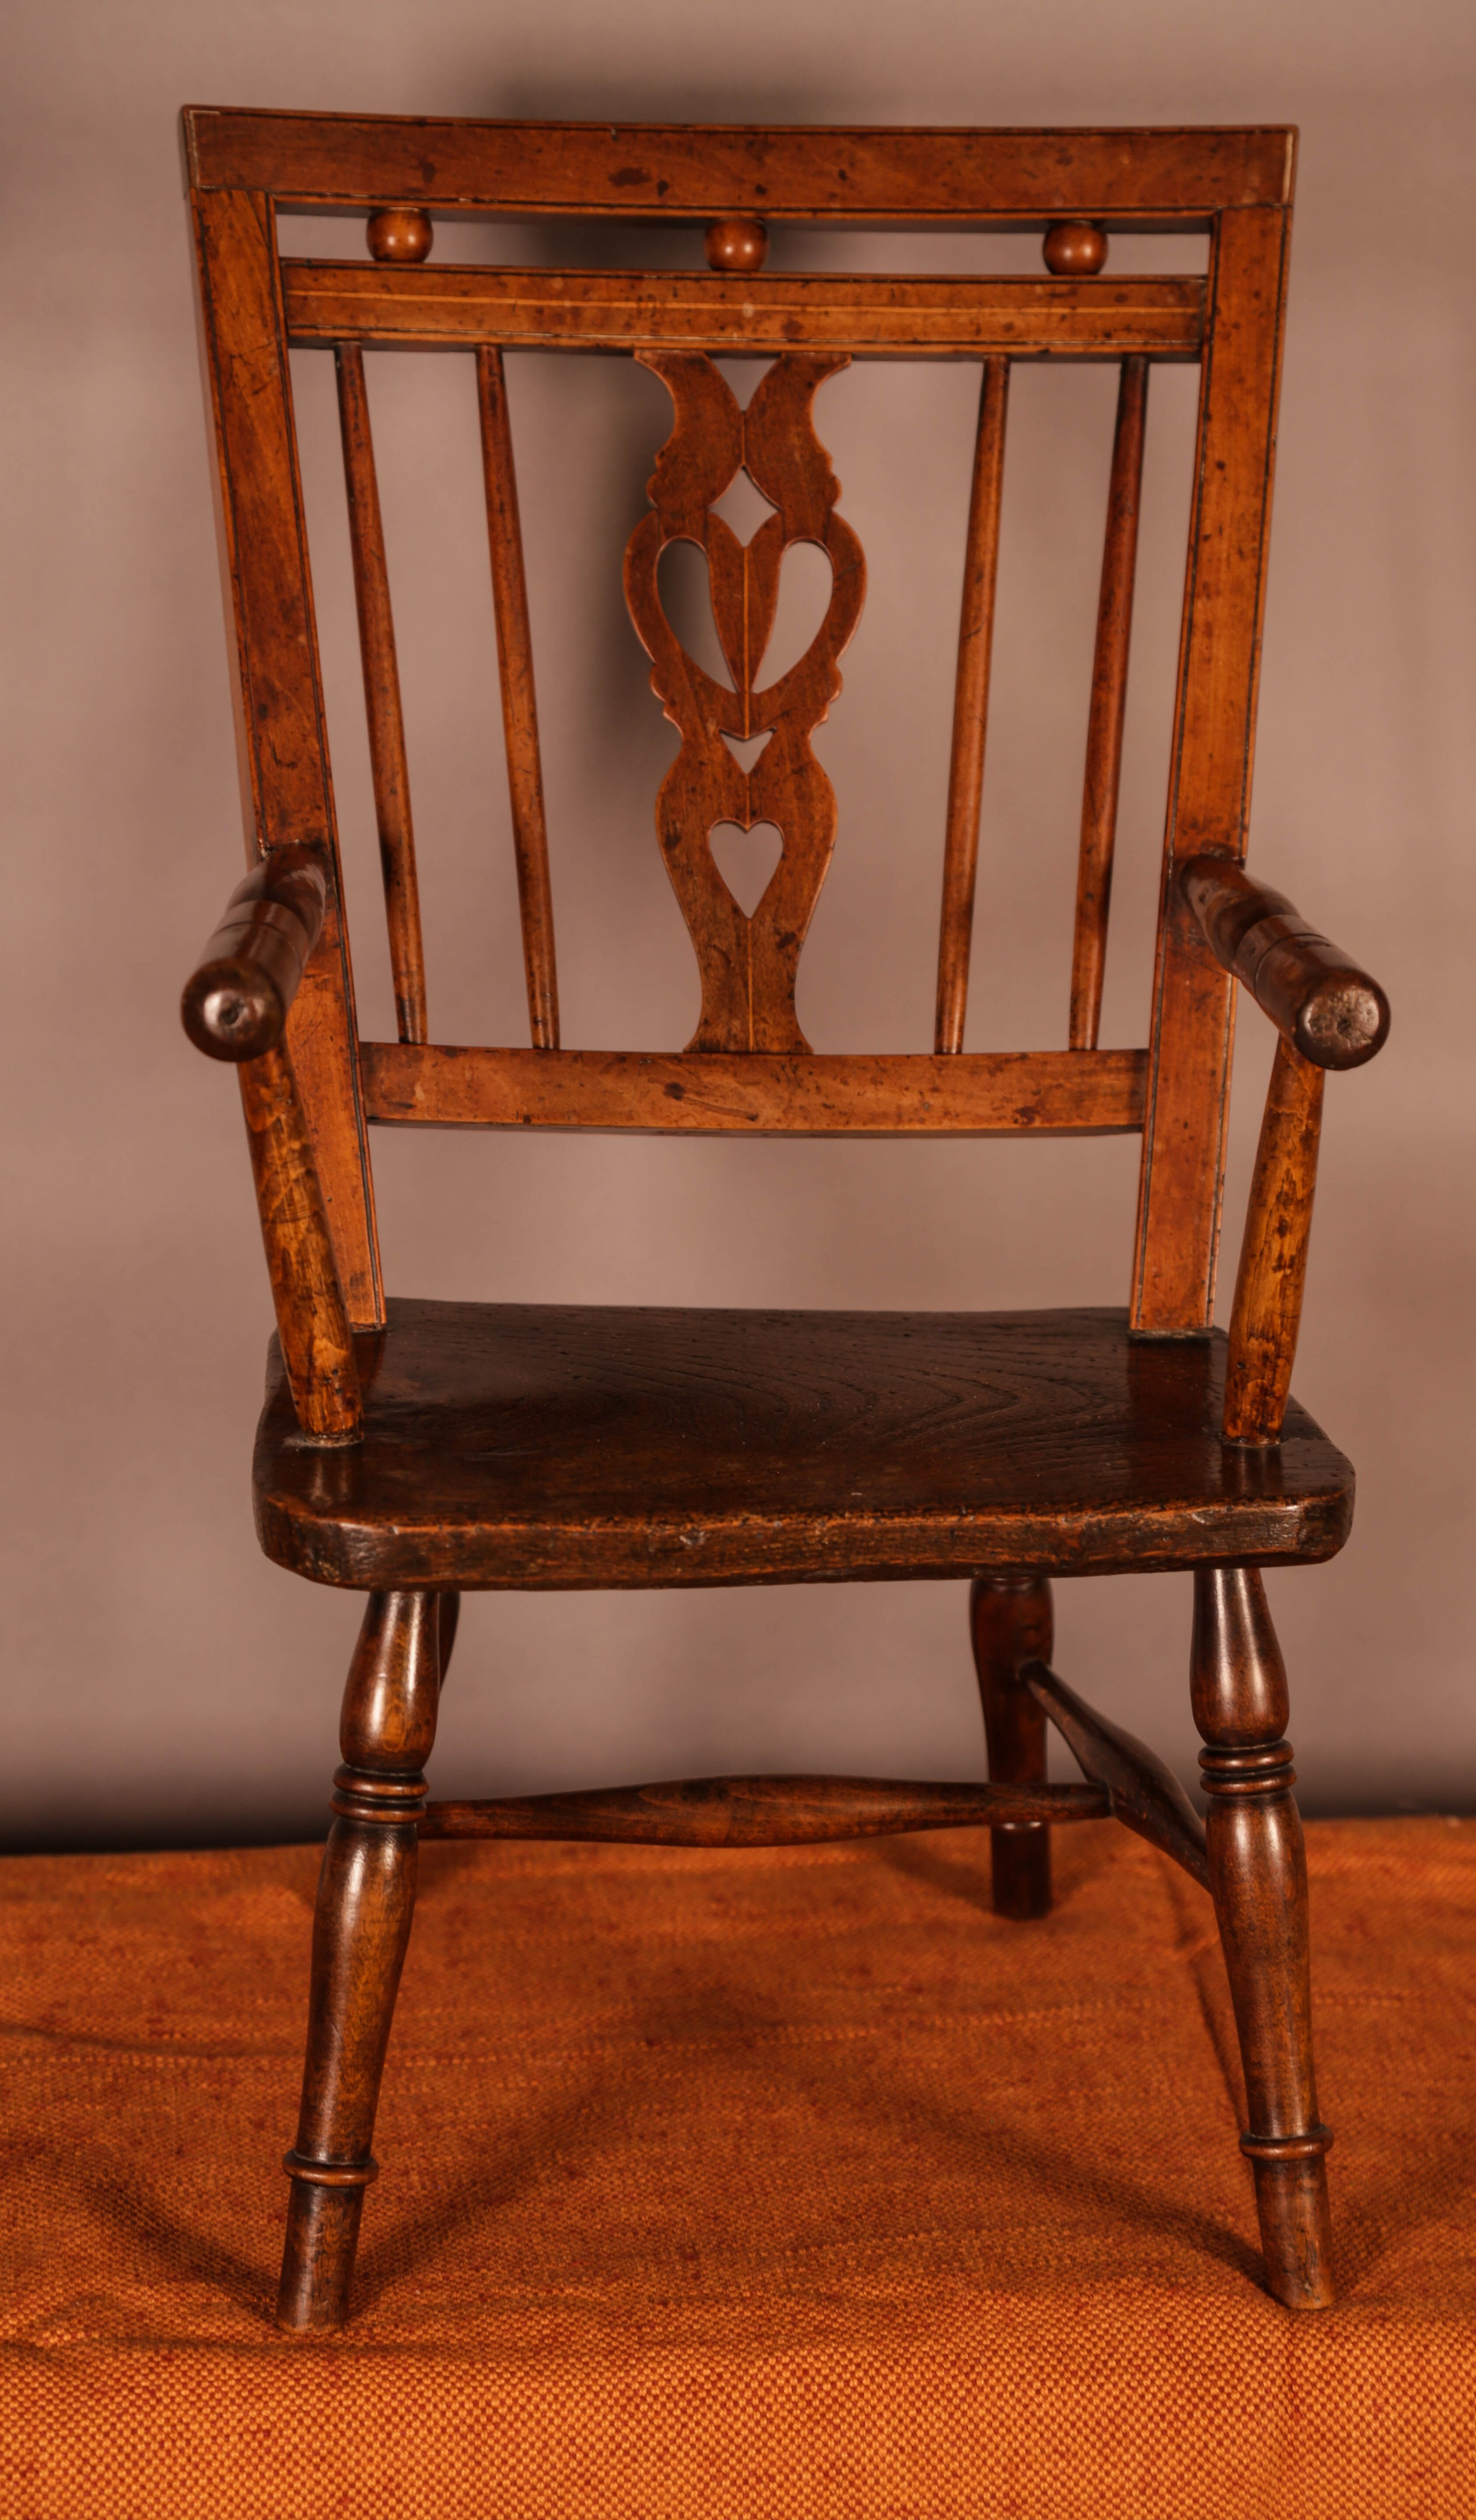 a rare childs mendlesham chair in yew wood